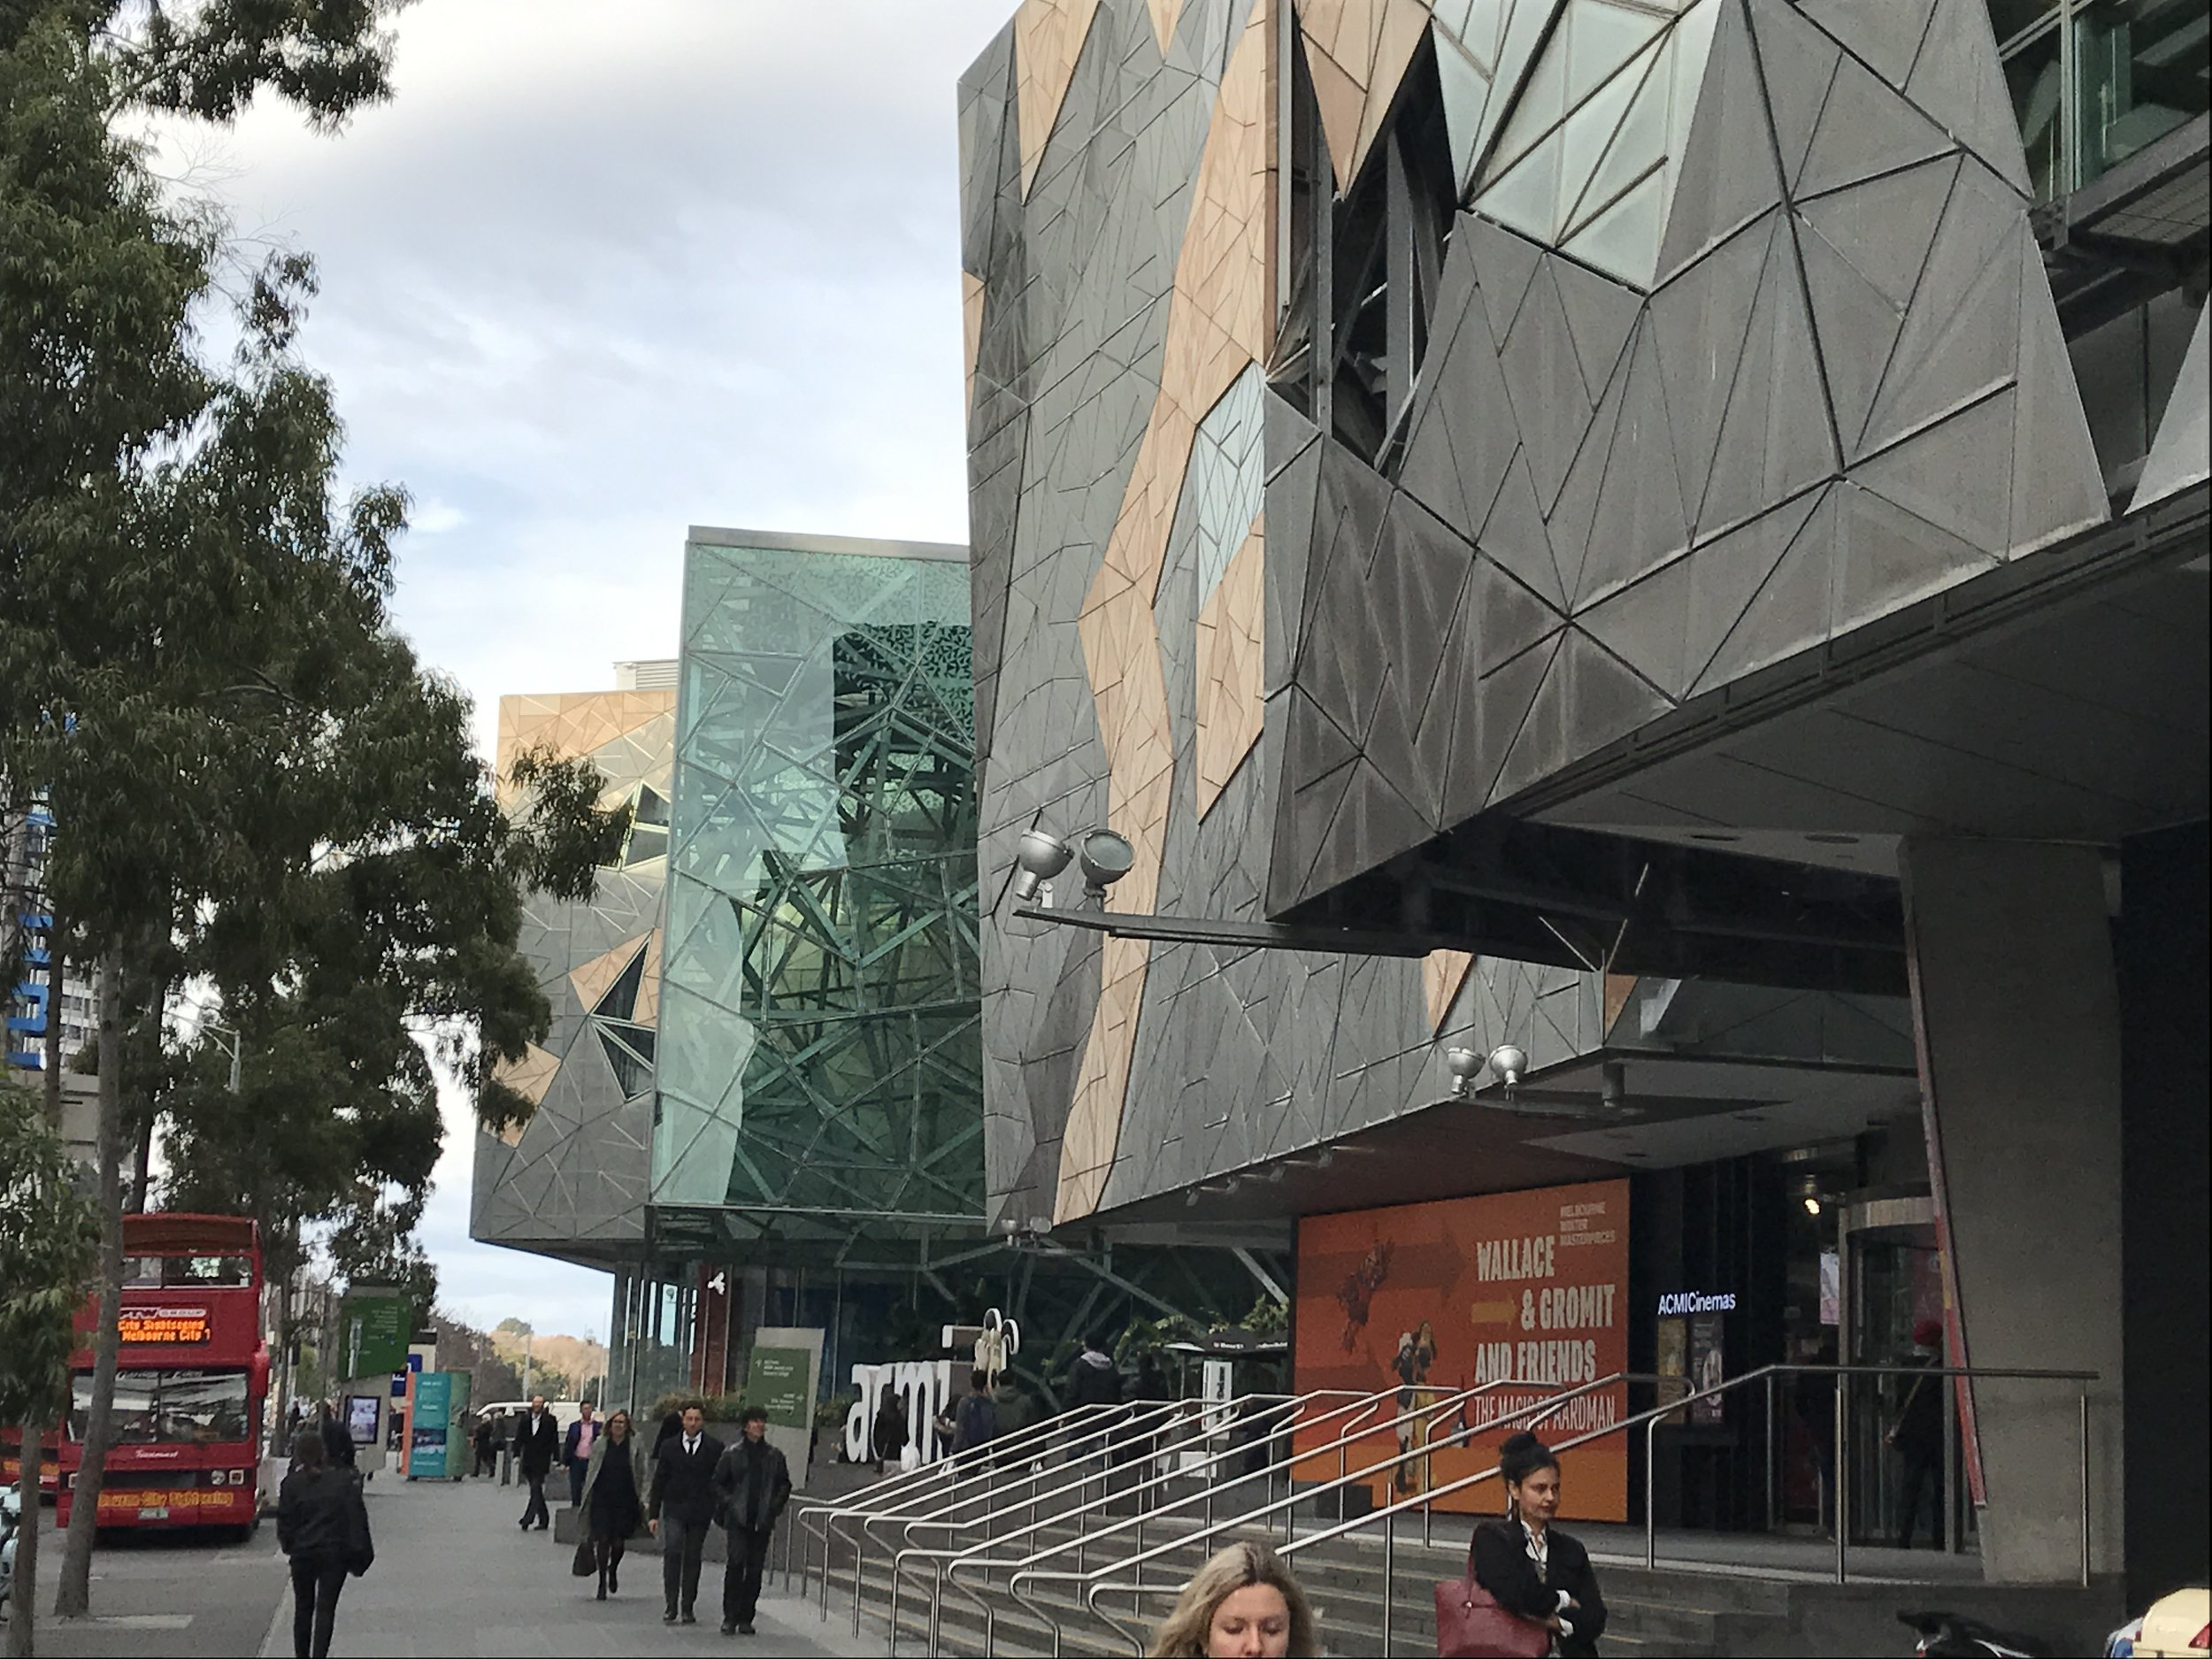 ACMI Melbourne by The Doubtful Traveller